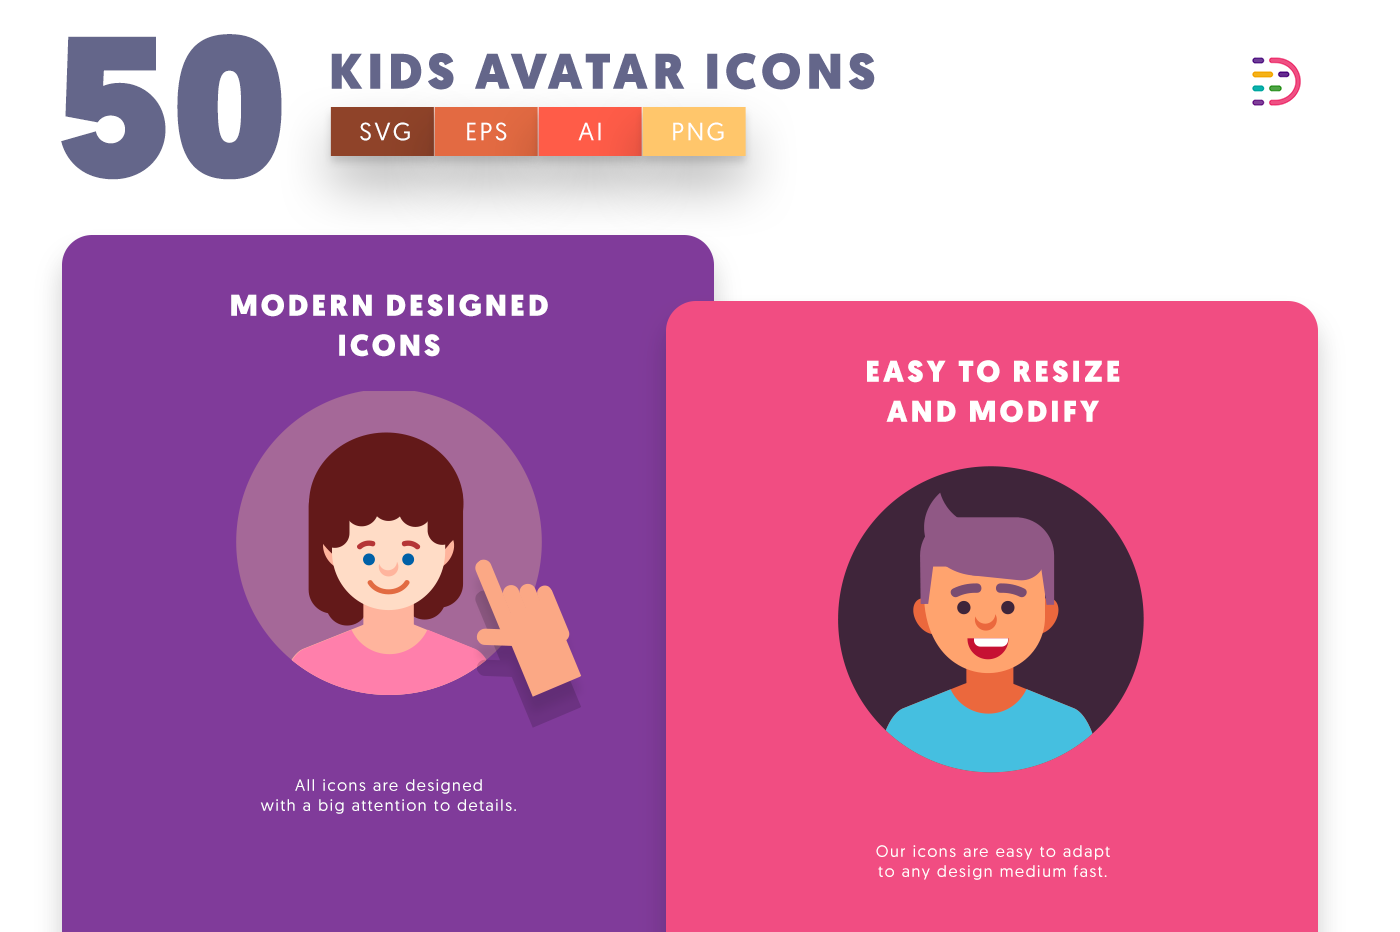 Drag and drop vector 50 Kids Avatar Icons